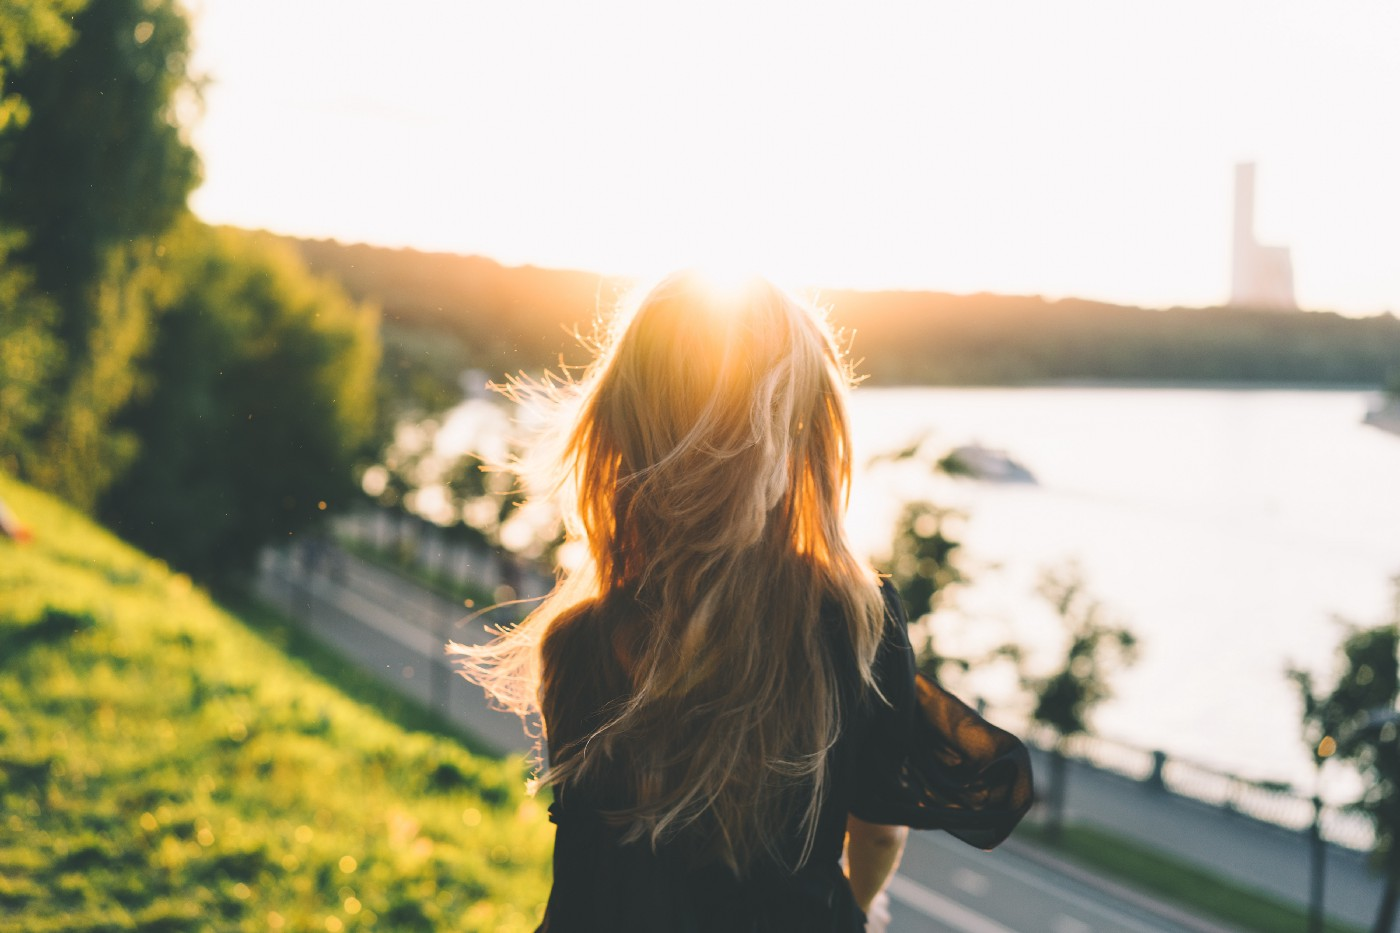 A woman stares out at the sunrise view of a boulevard by the water's edge, a lighthouse in the distance.